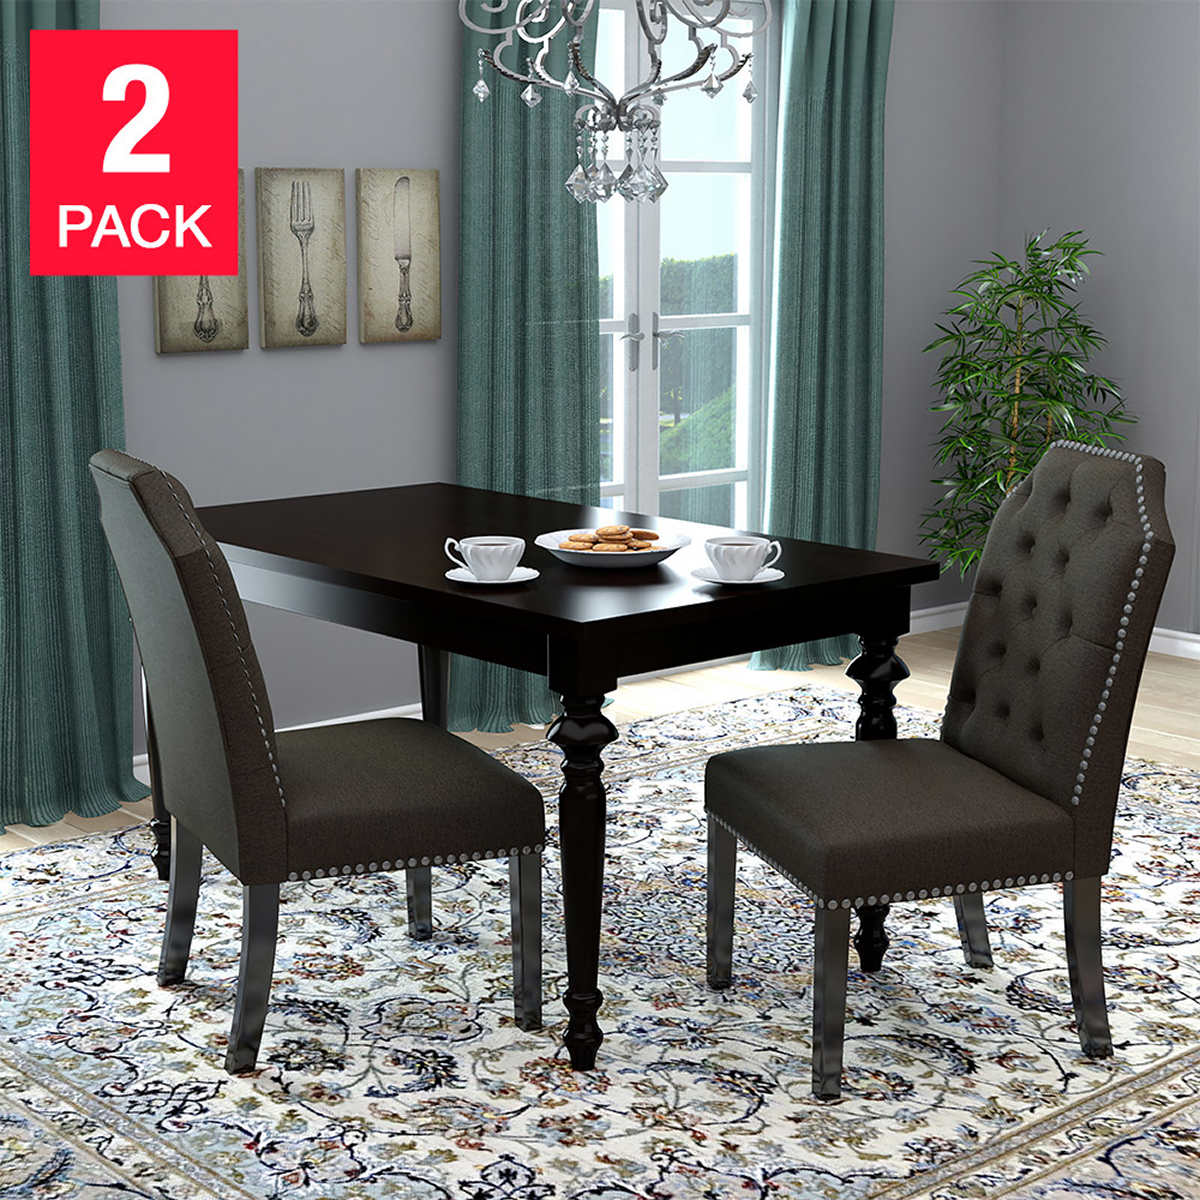 dining chairs costco michelle dining chair 2 pack brown